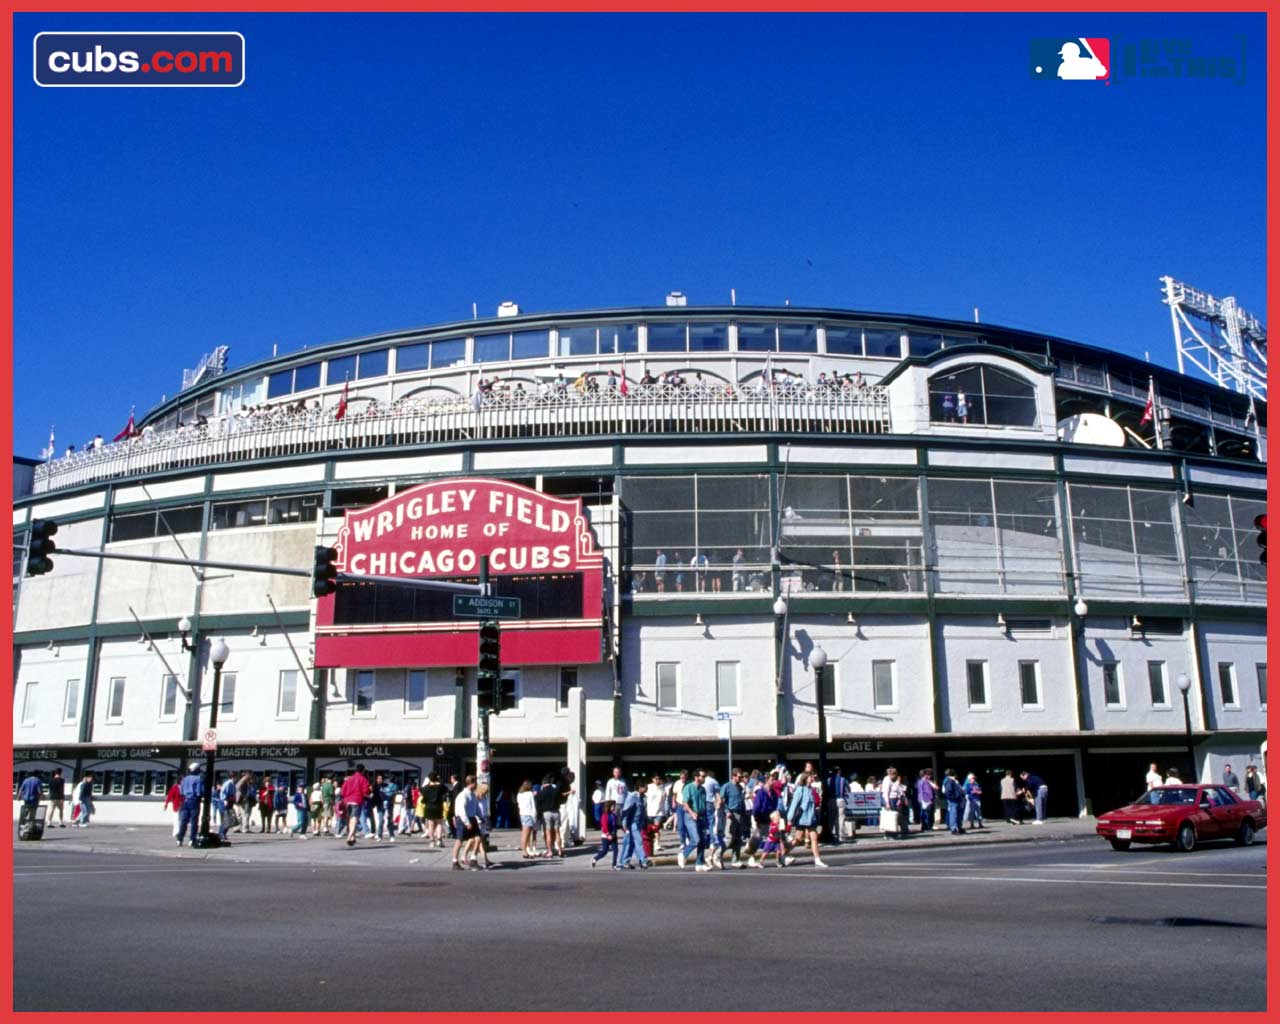 Chicago Cubs 2018 Wallpapers Wallpaper Cave